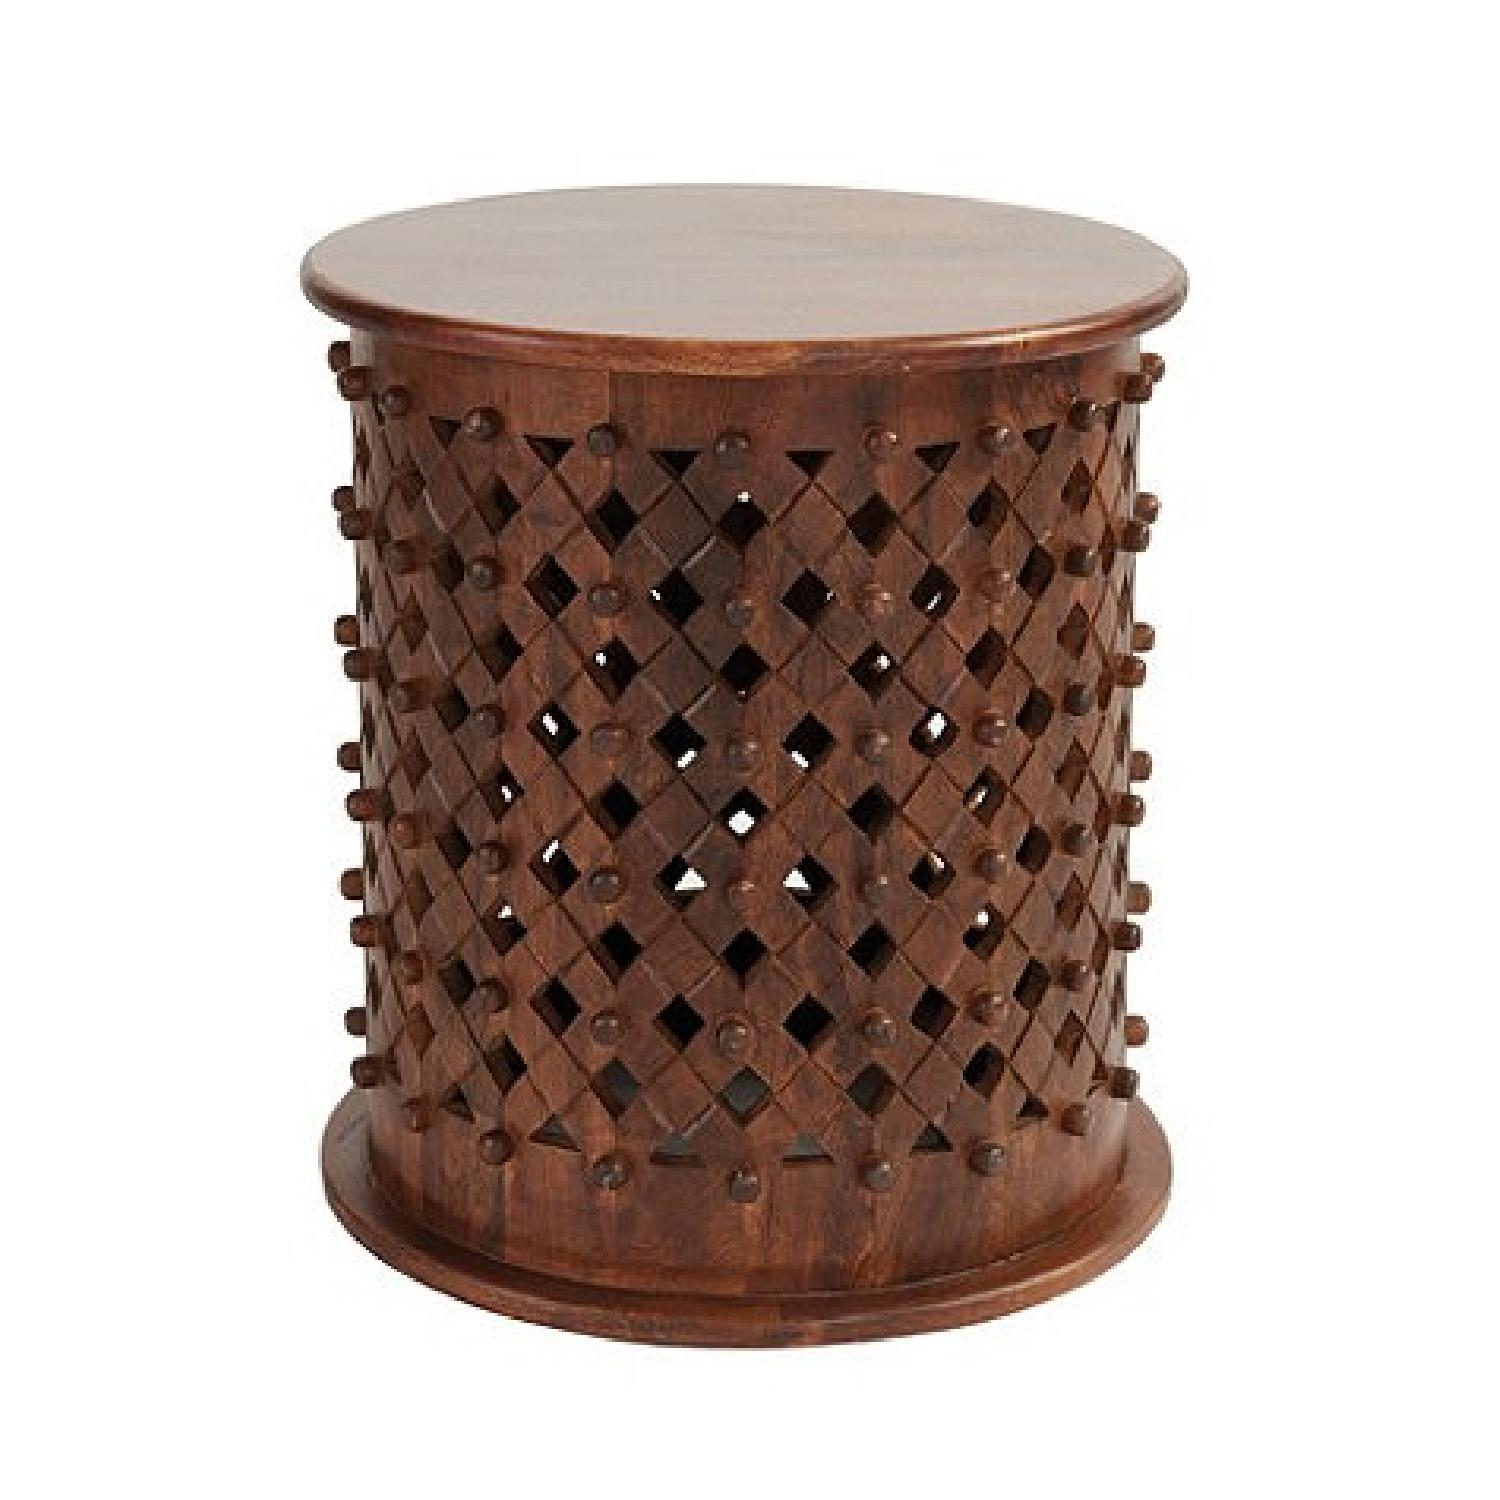 Ballard Designs Round Carved Wood Side Table - image-0